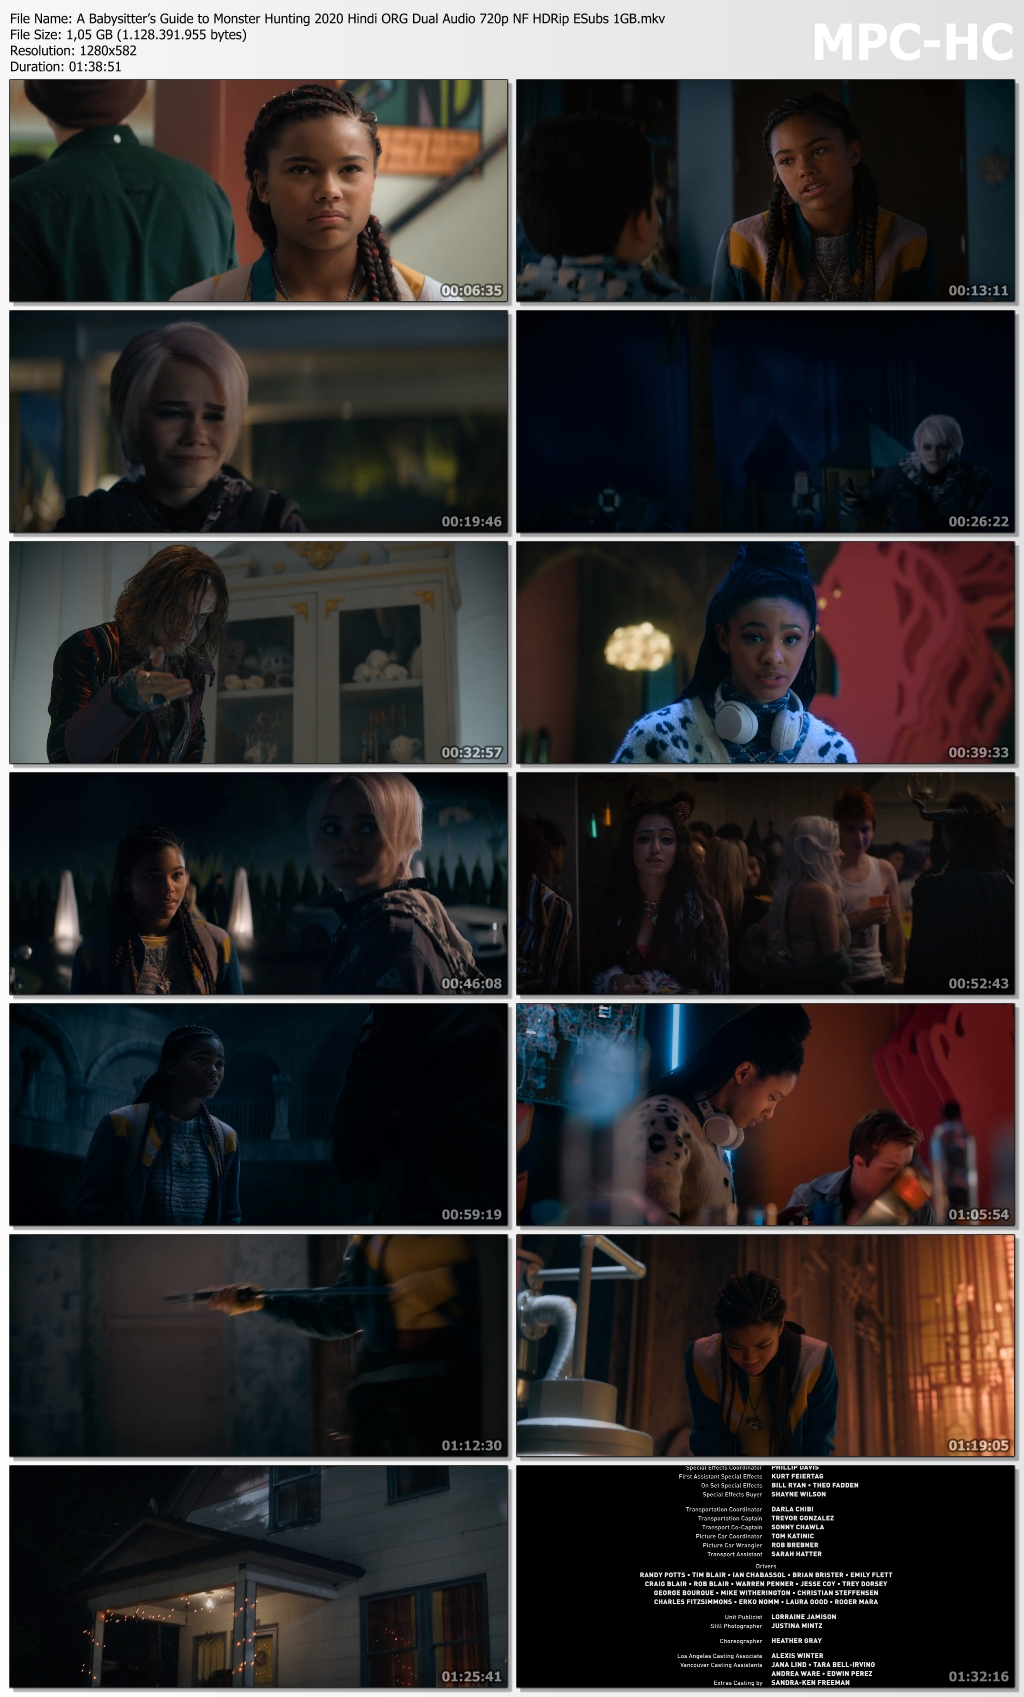 A-Babysitter-s-Guide-to-Monster-Hunting-2020-Hindi-ORG-Dual-Audio-720p-NF-HDRip-ESubs-1-GB-mkv-thumb